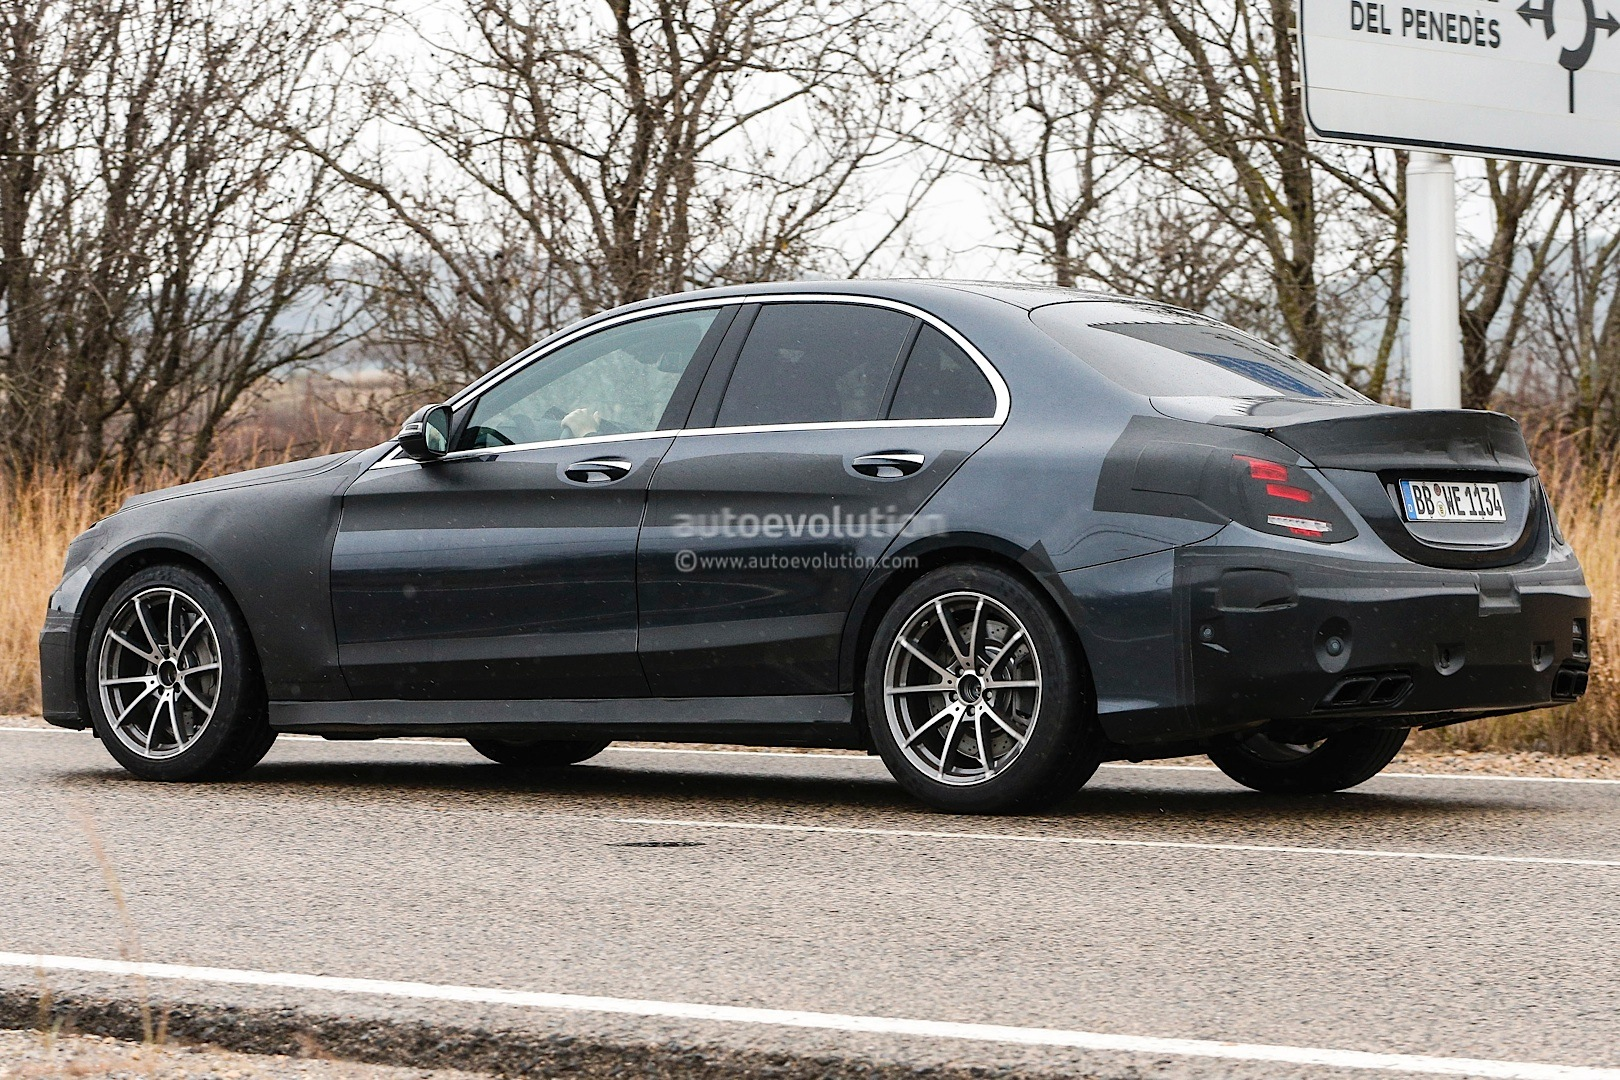 Spyshots new mercedes c63 amg most revealing photos yet for How much is a mercedes benz c63 amg